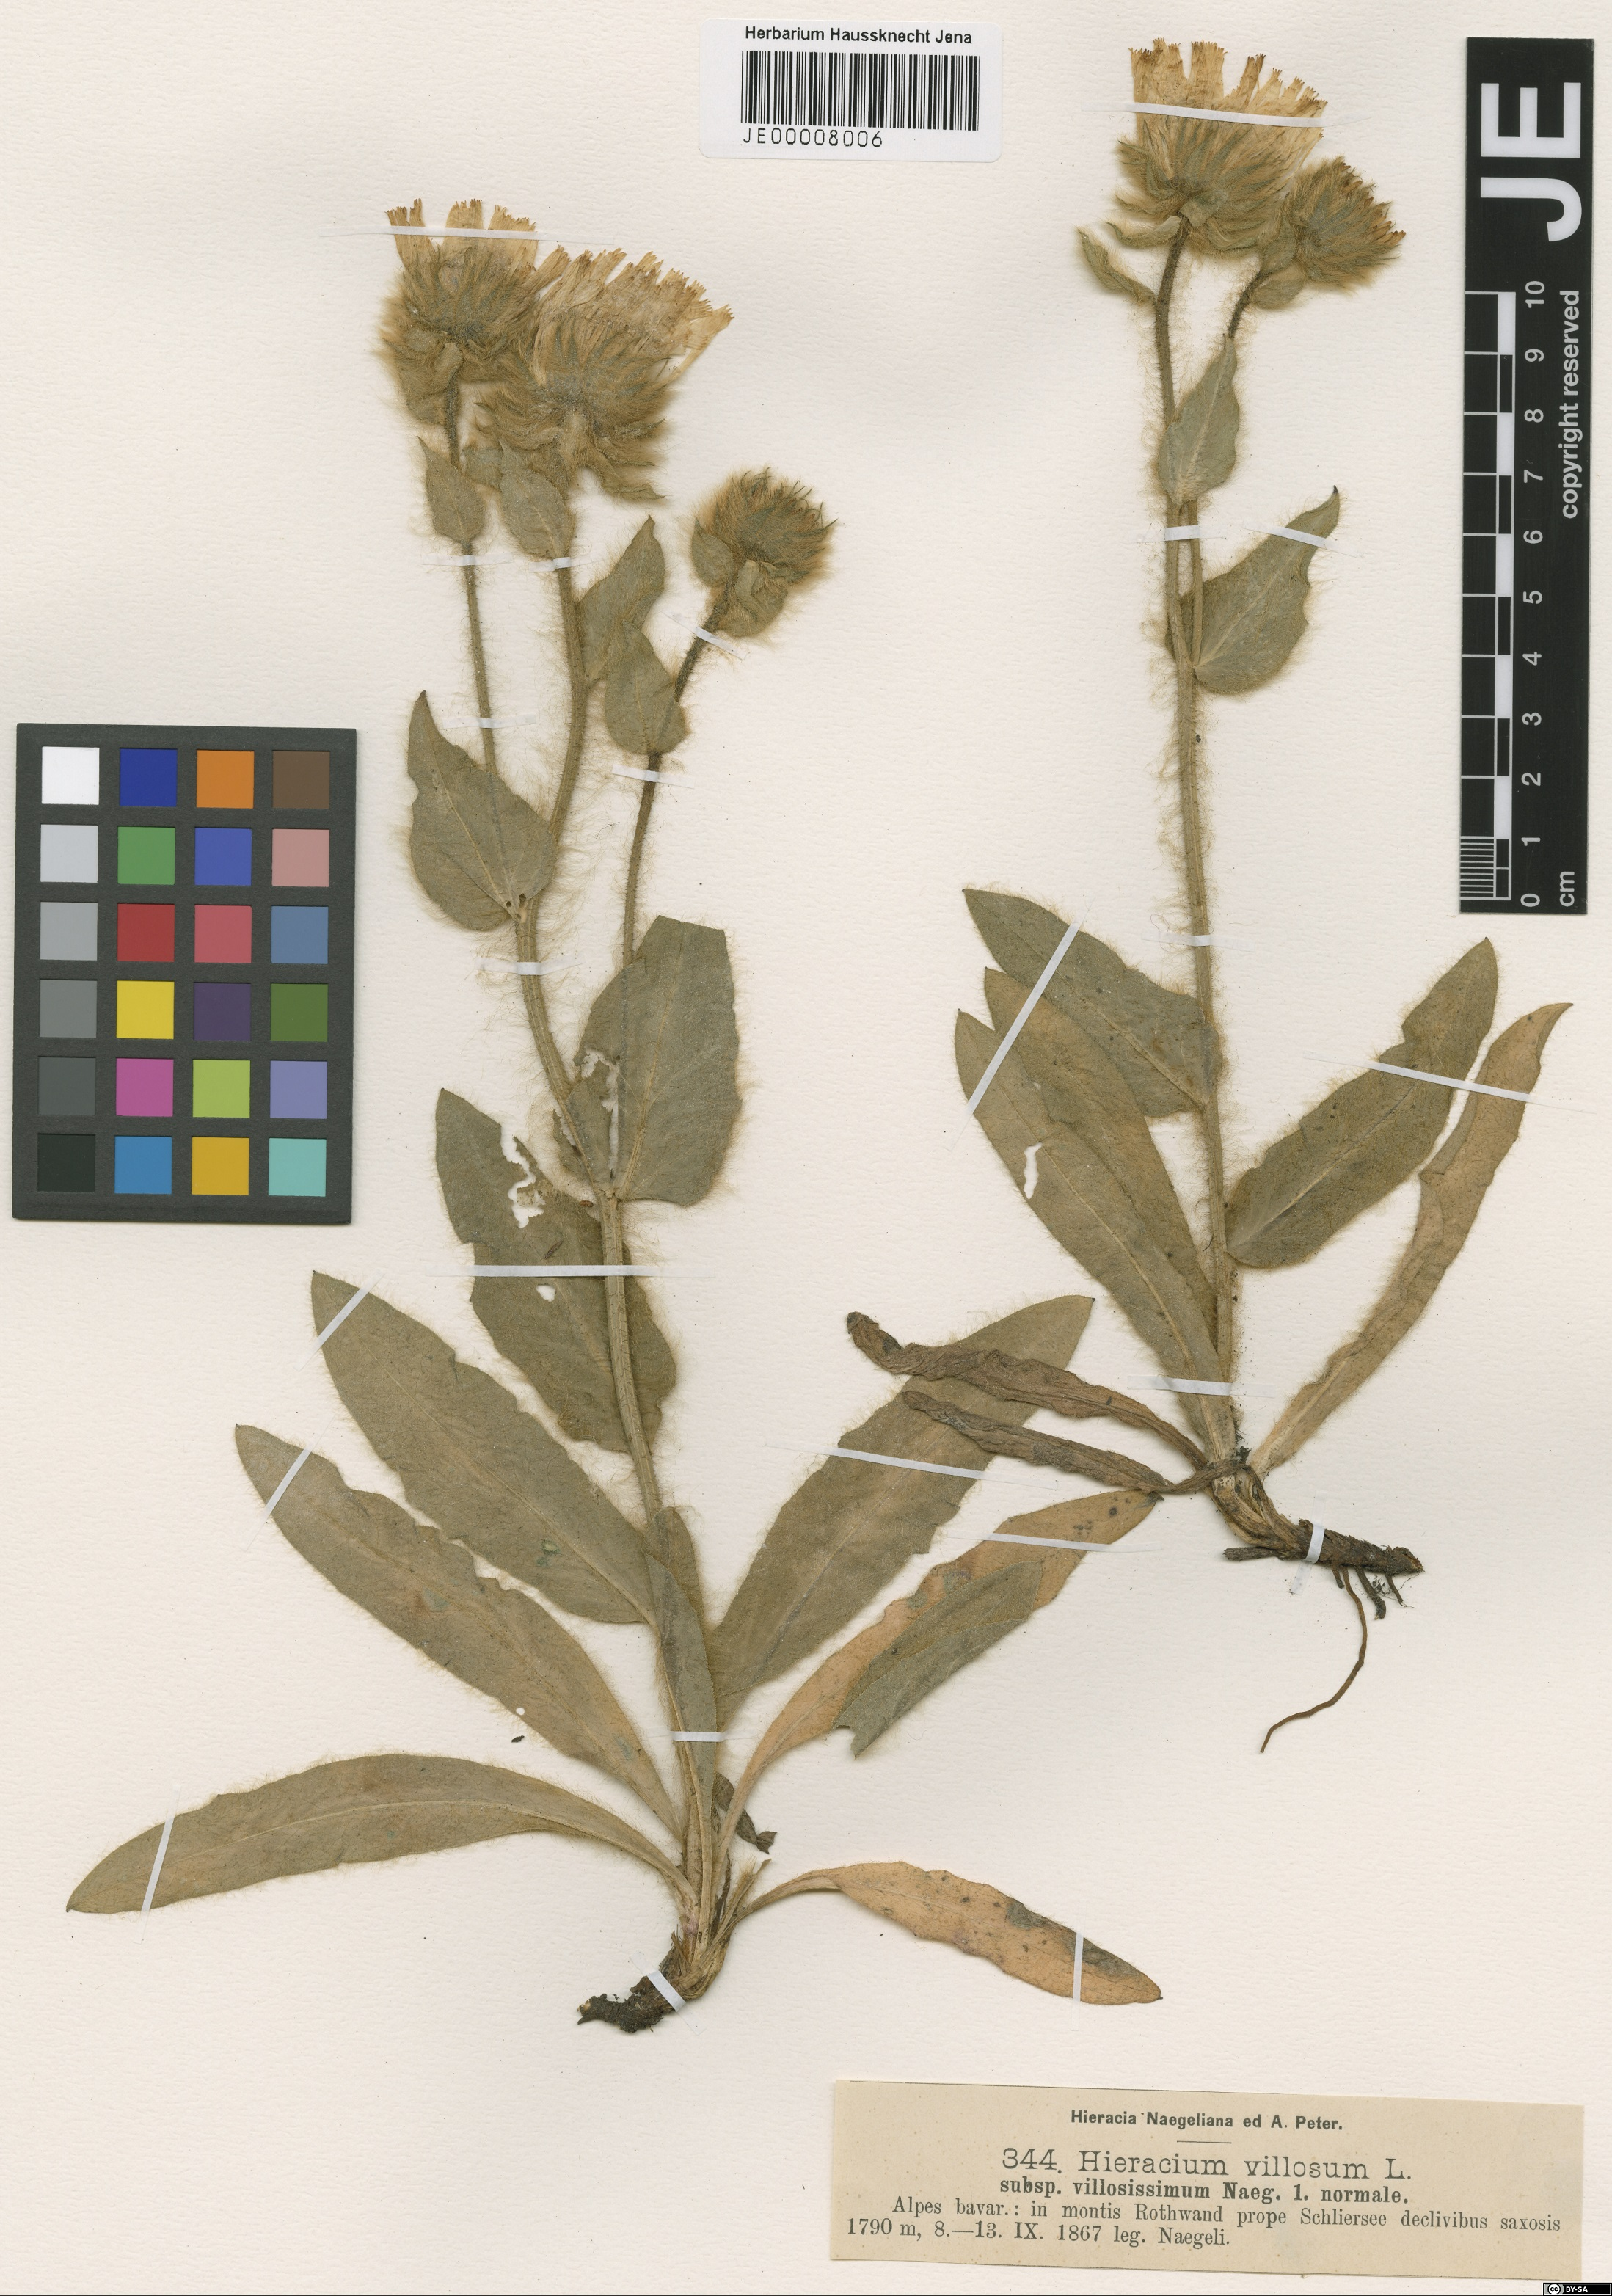 Herbarium: JE 00008006 - Source: http://herbarium.univie.ac.at/database/detail.php?ID=157934<br>by